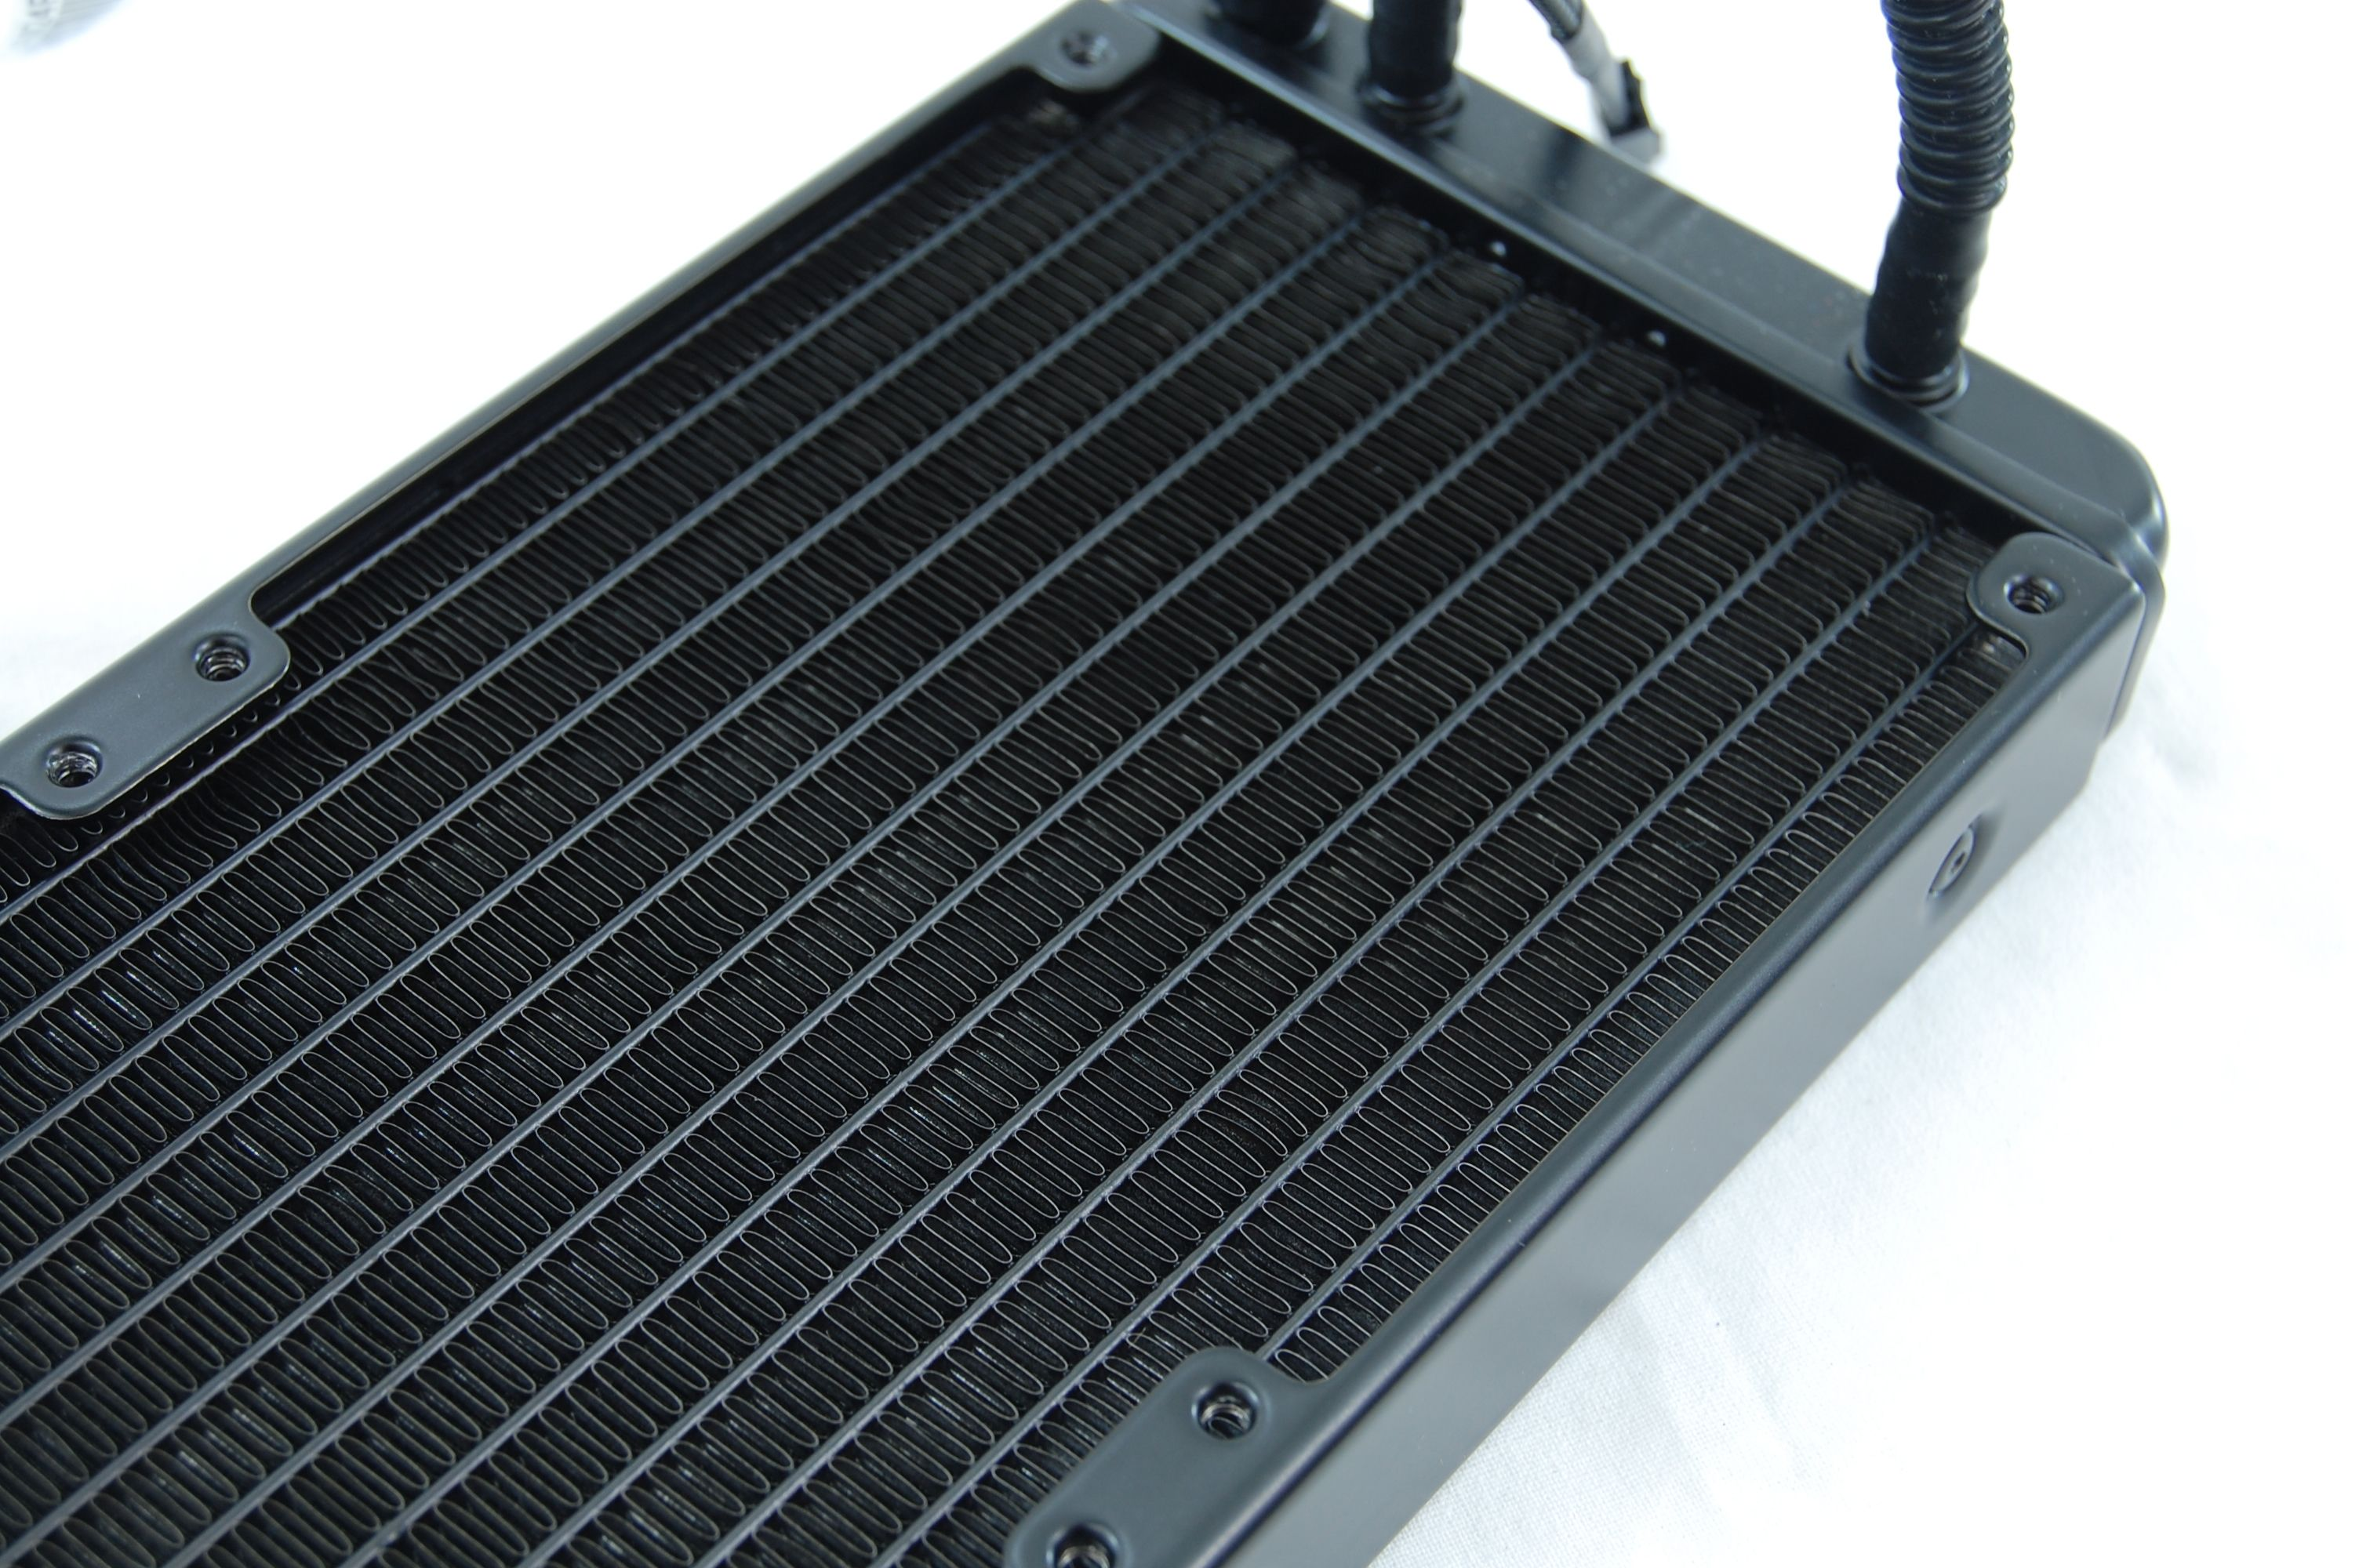 CoolerMaster Seidon 240M All-in-One Liquid CPU Cooler Review - 240mm Radiator Fins